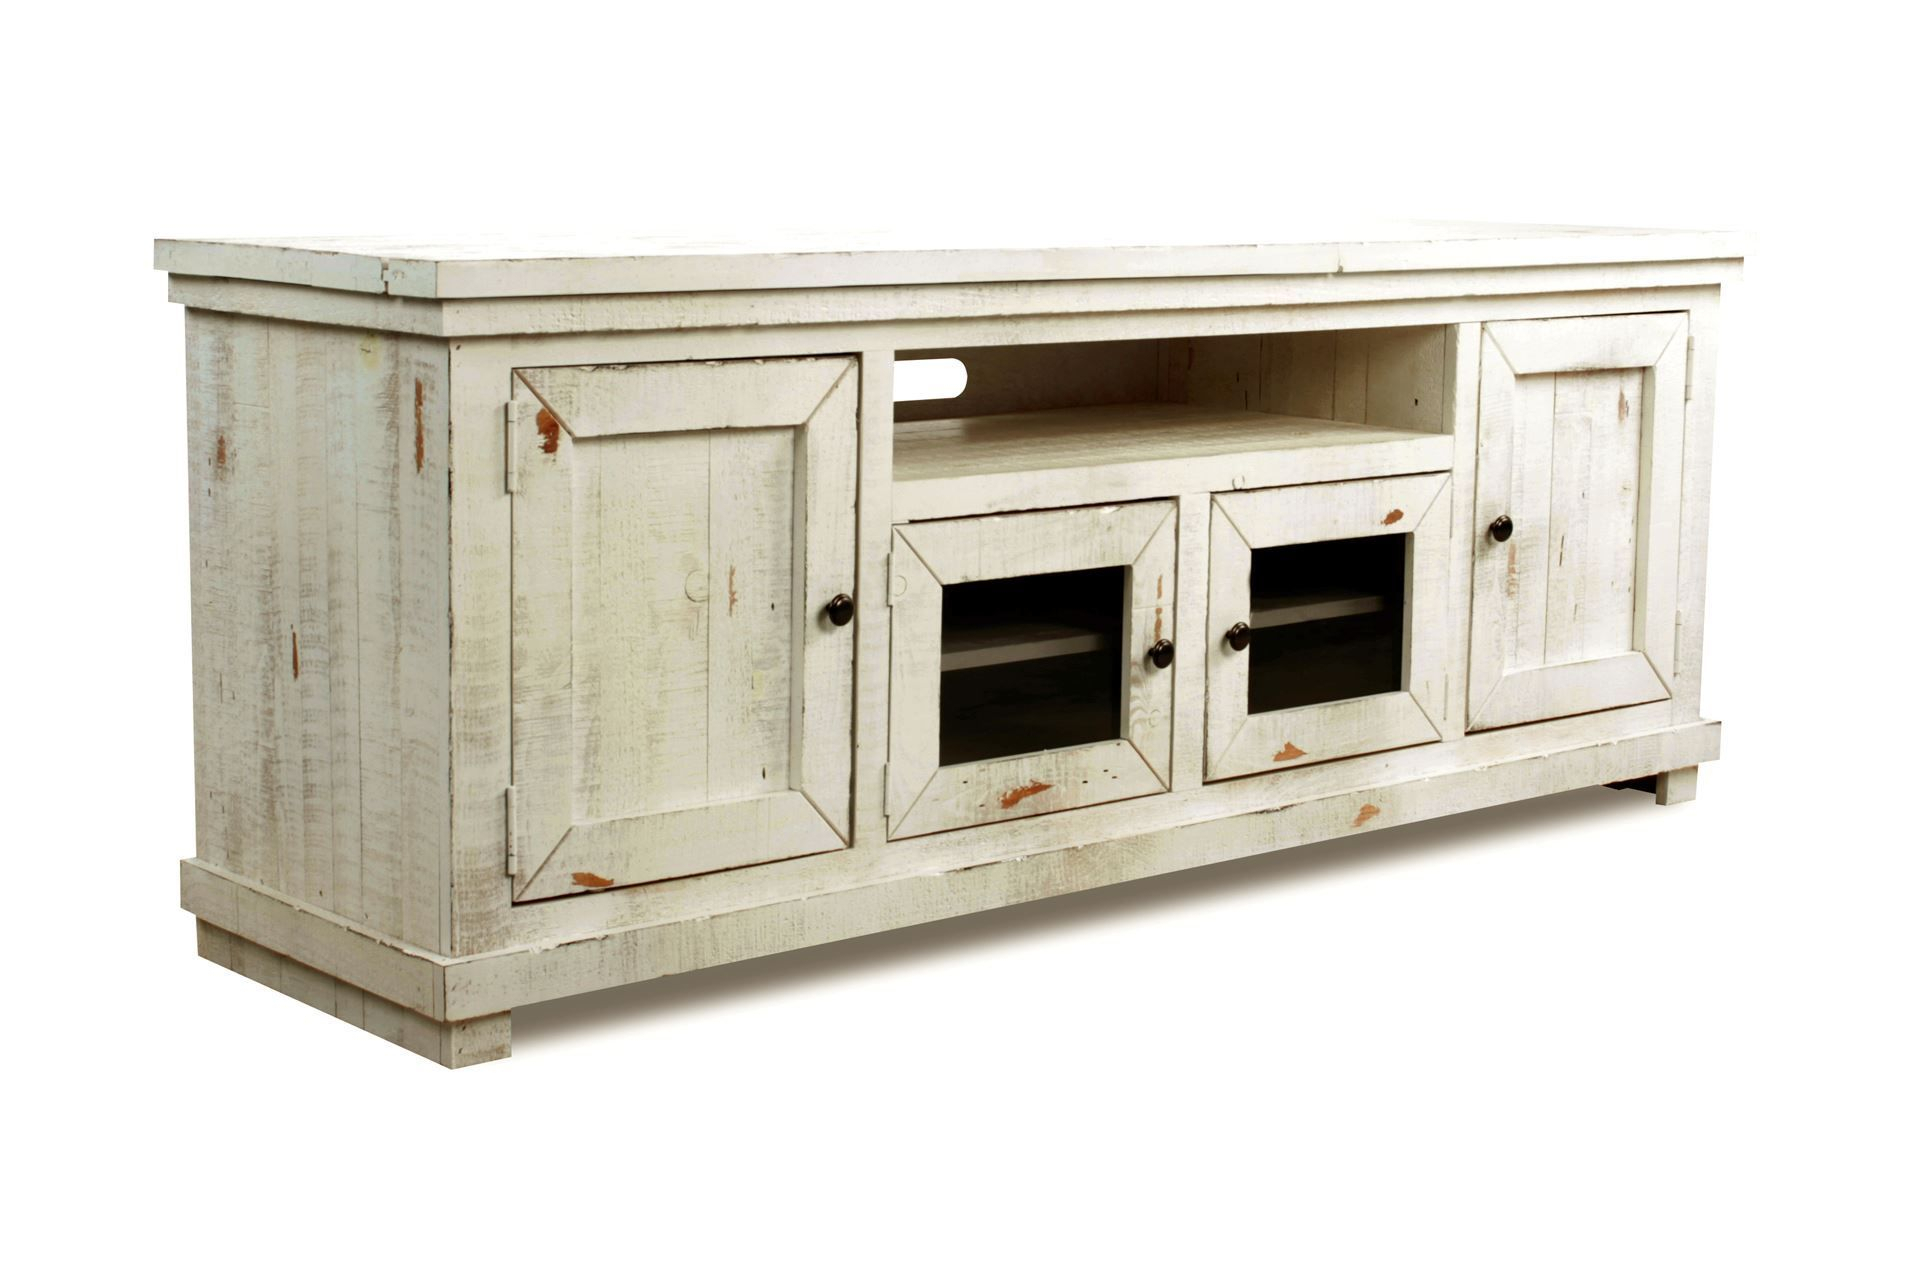 Sinclair White 74 Inch Tv Stand | Furniture Collection | Living Room For Ducar 74 Inch Tv Stands (View 9 of 30)